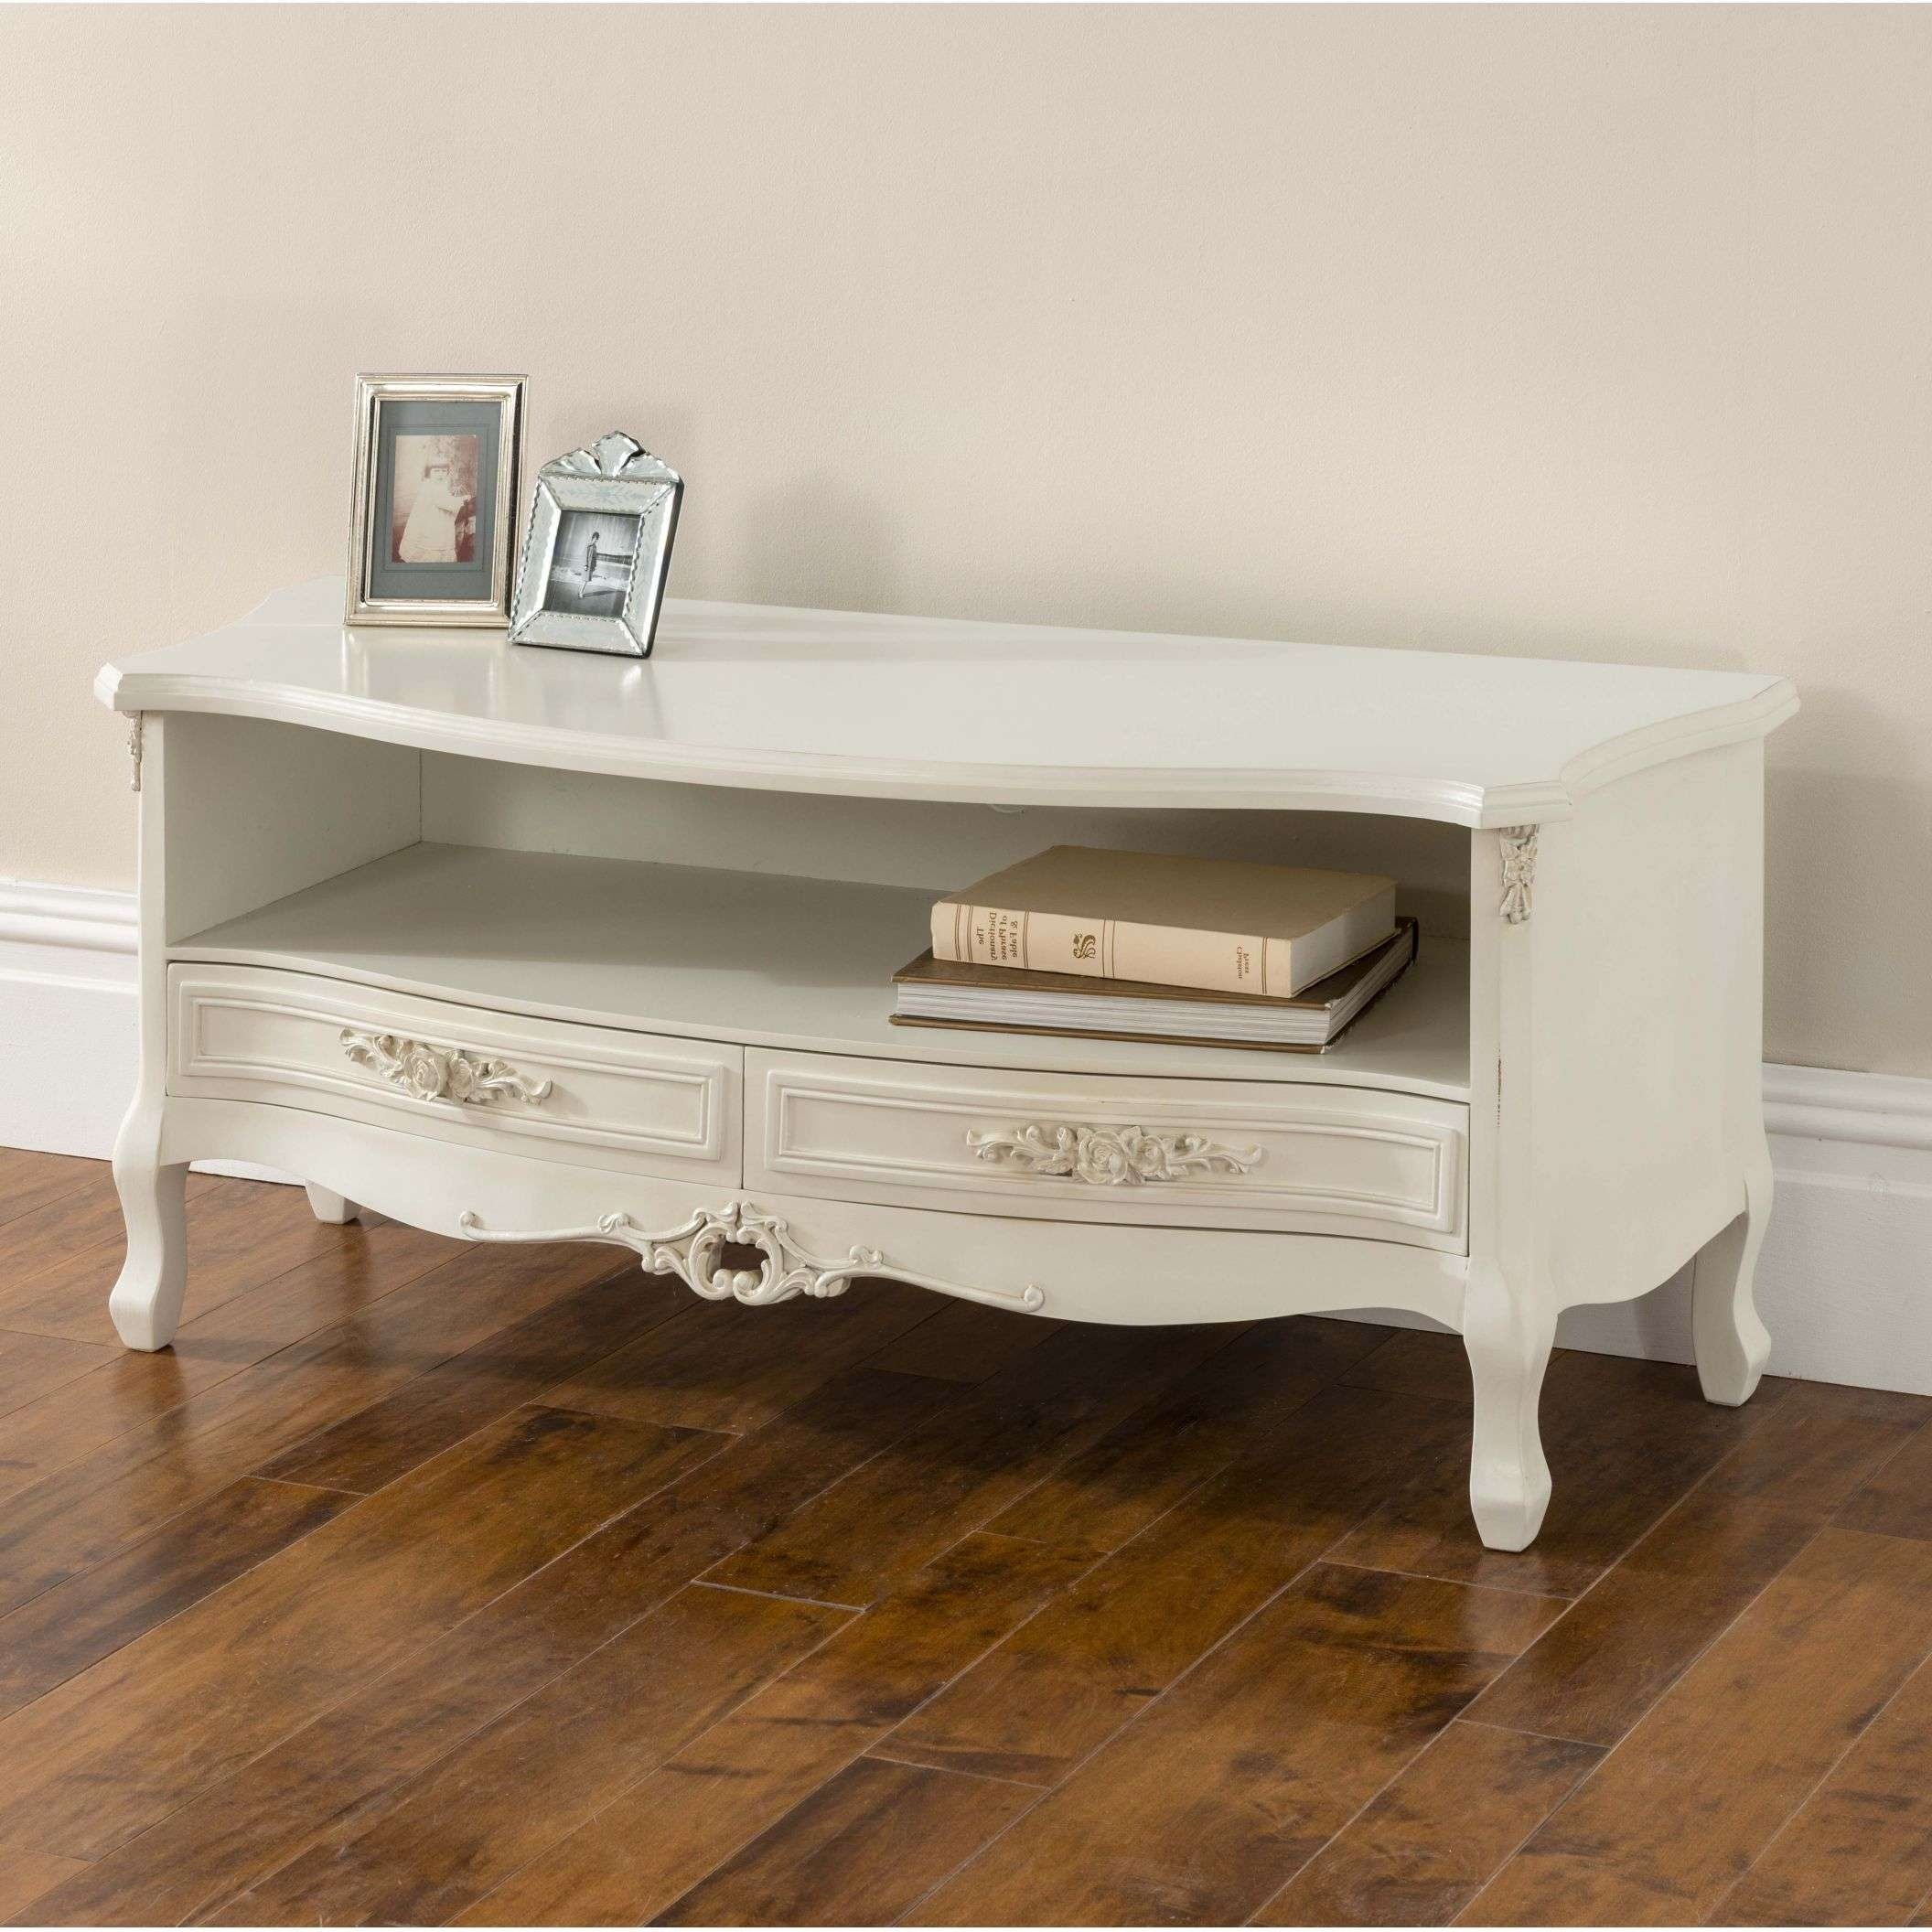 Stunning New Collection Of French Furniture | Homes Direct 365 For Antique Style Tv Stands (View 5 of 15)